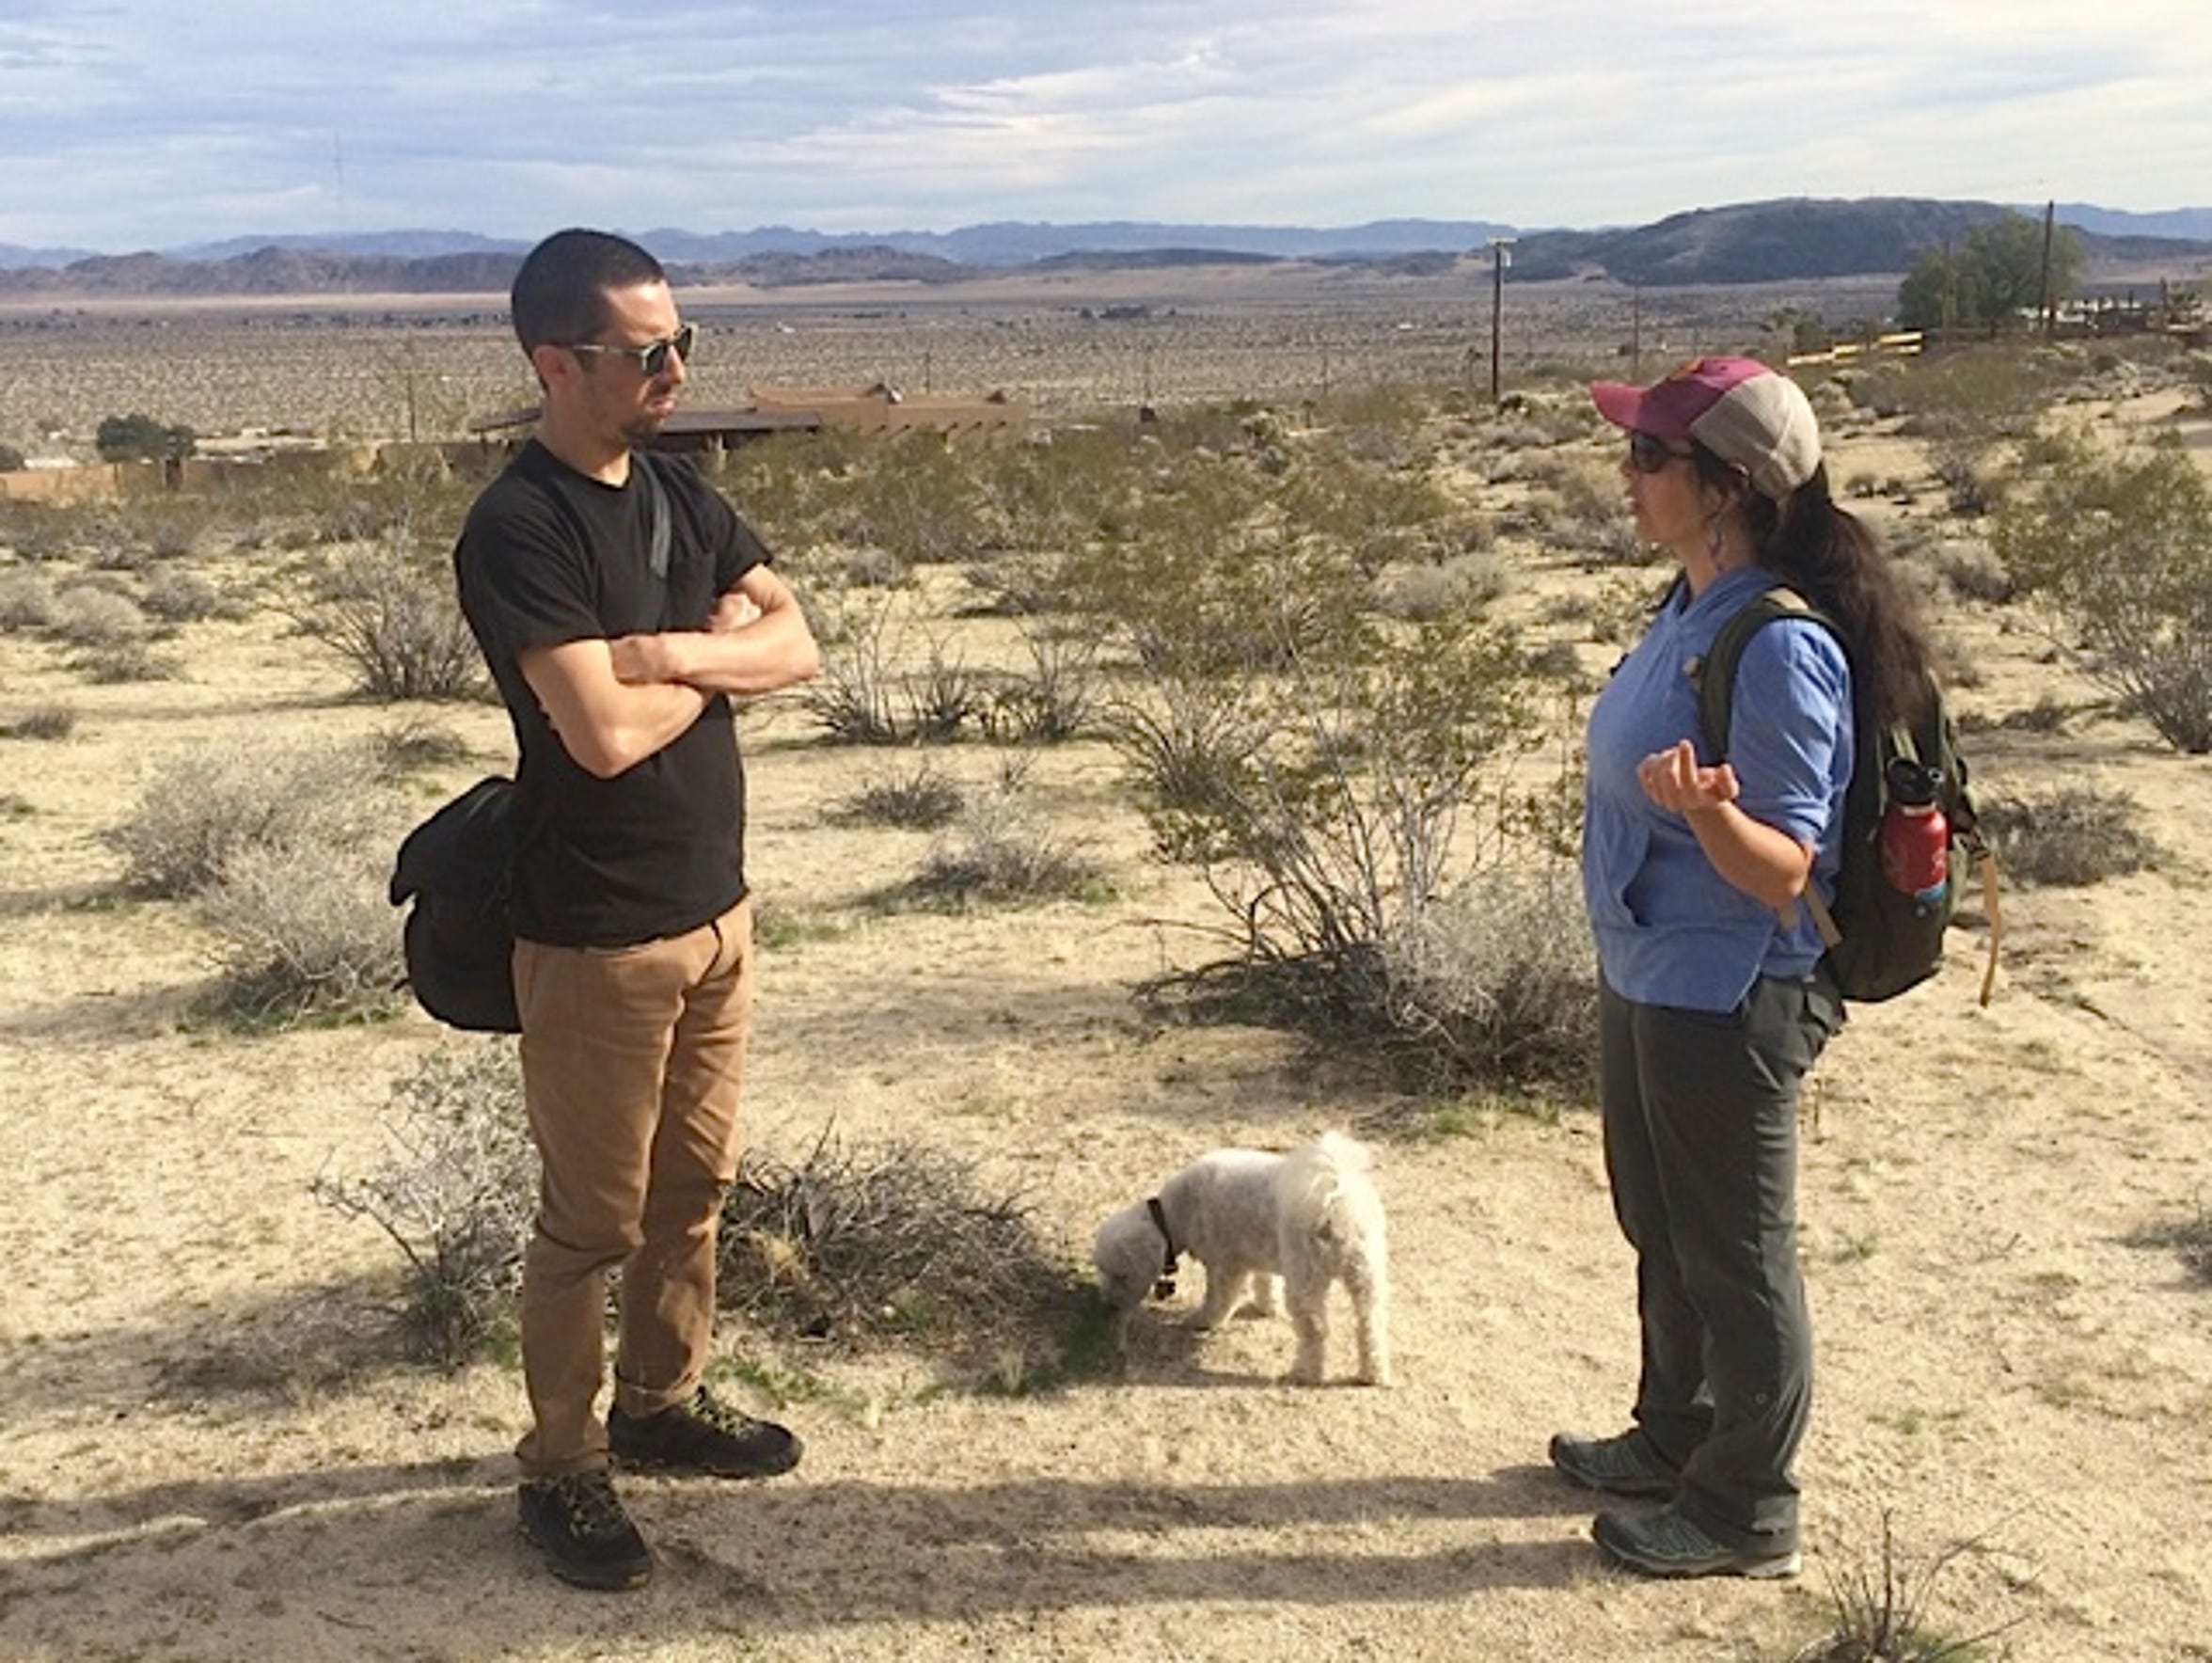 Artist Gregory Michael Hernandez works with Mojave